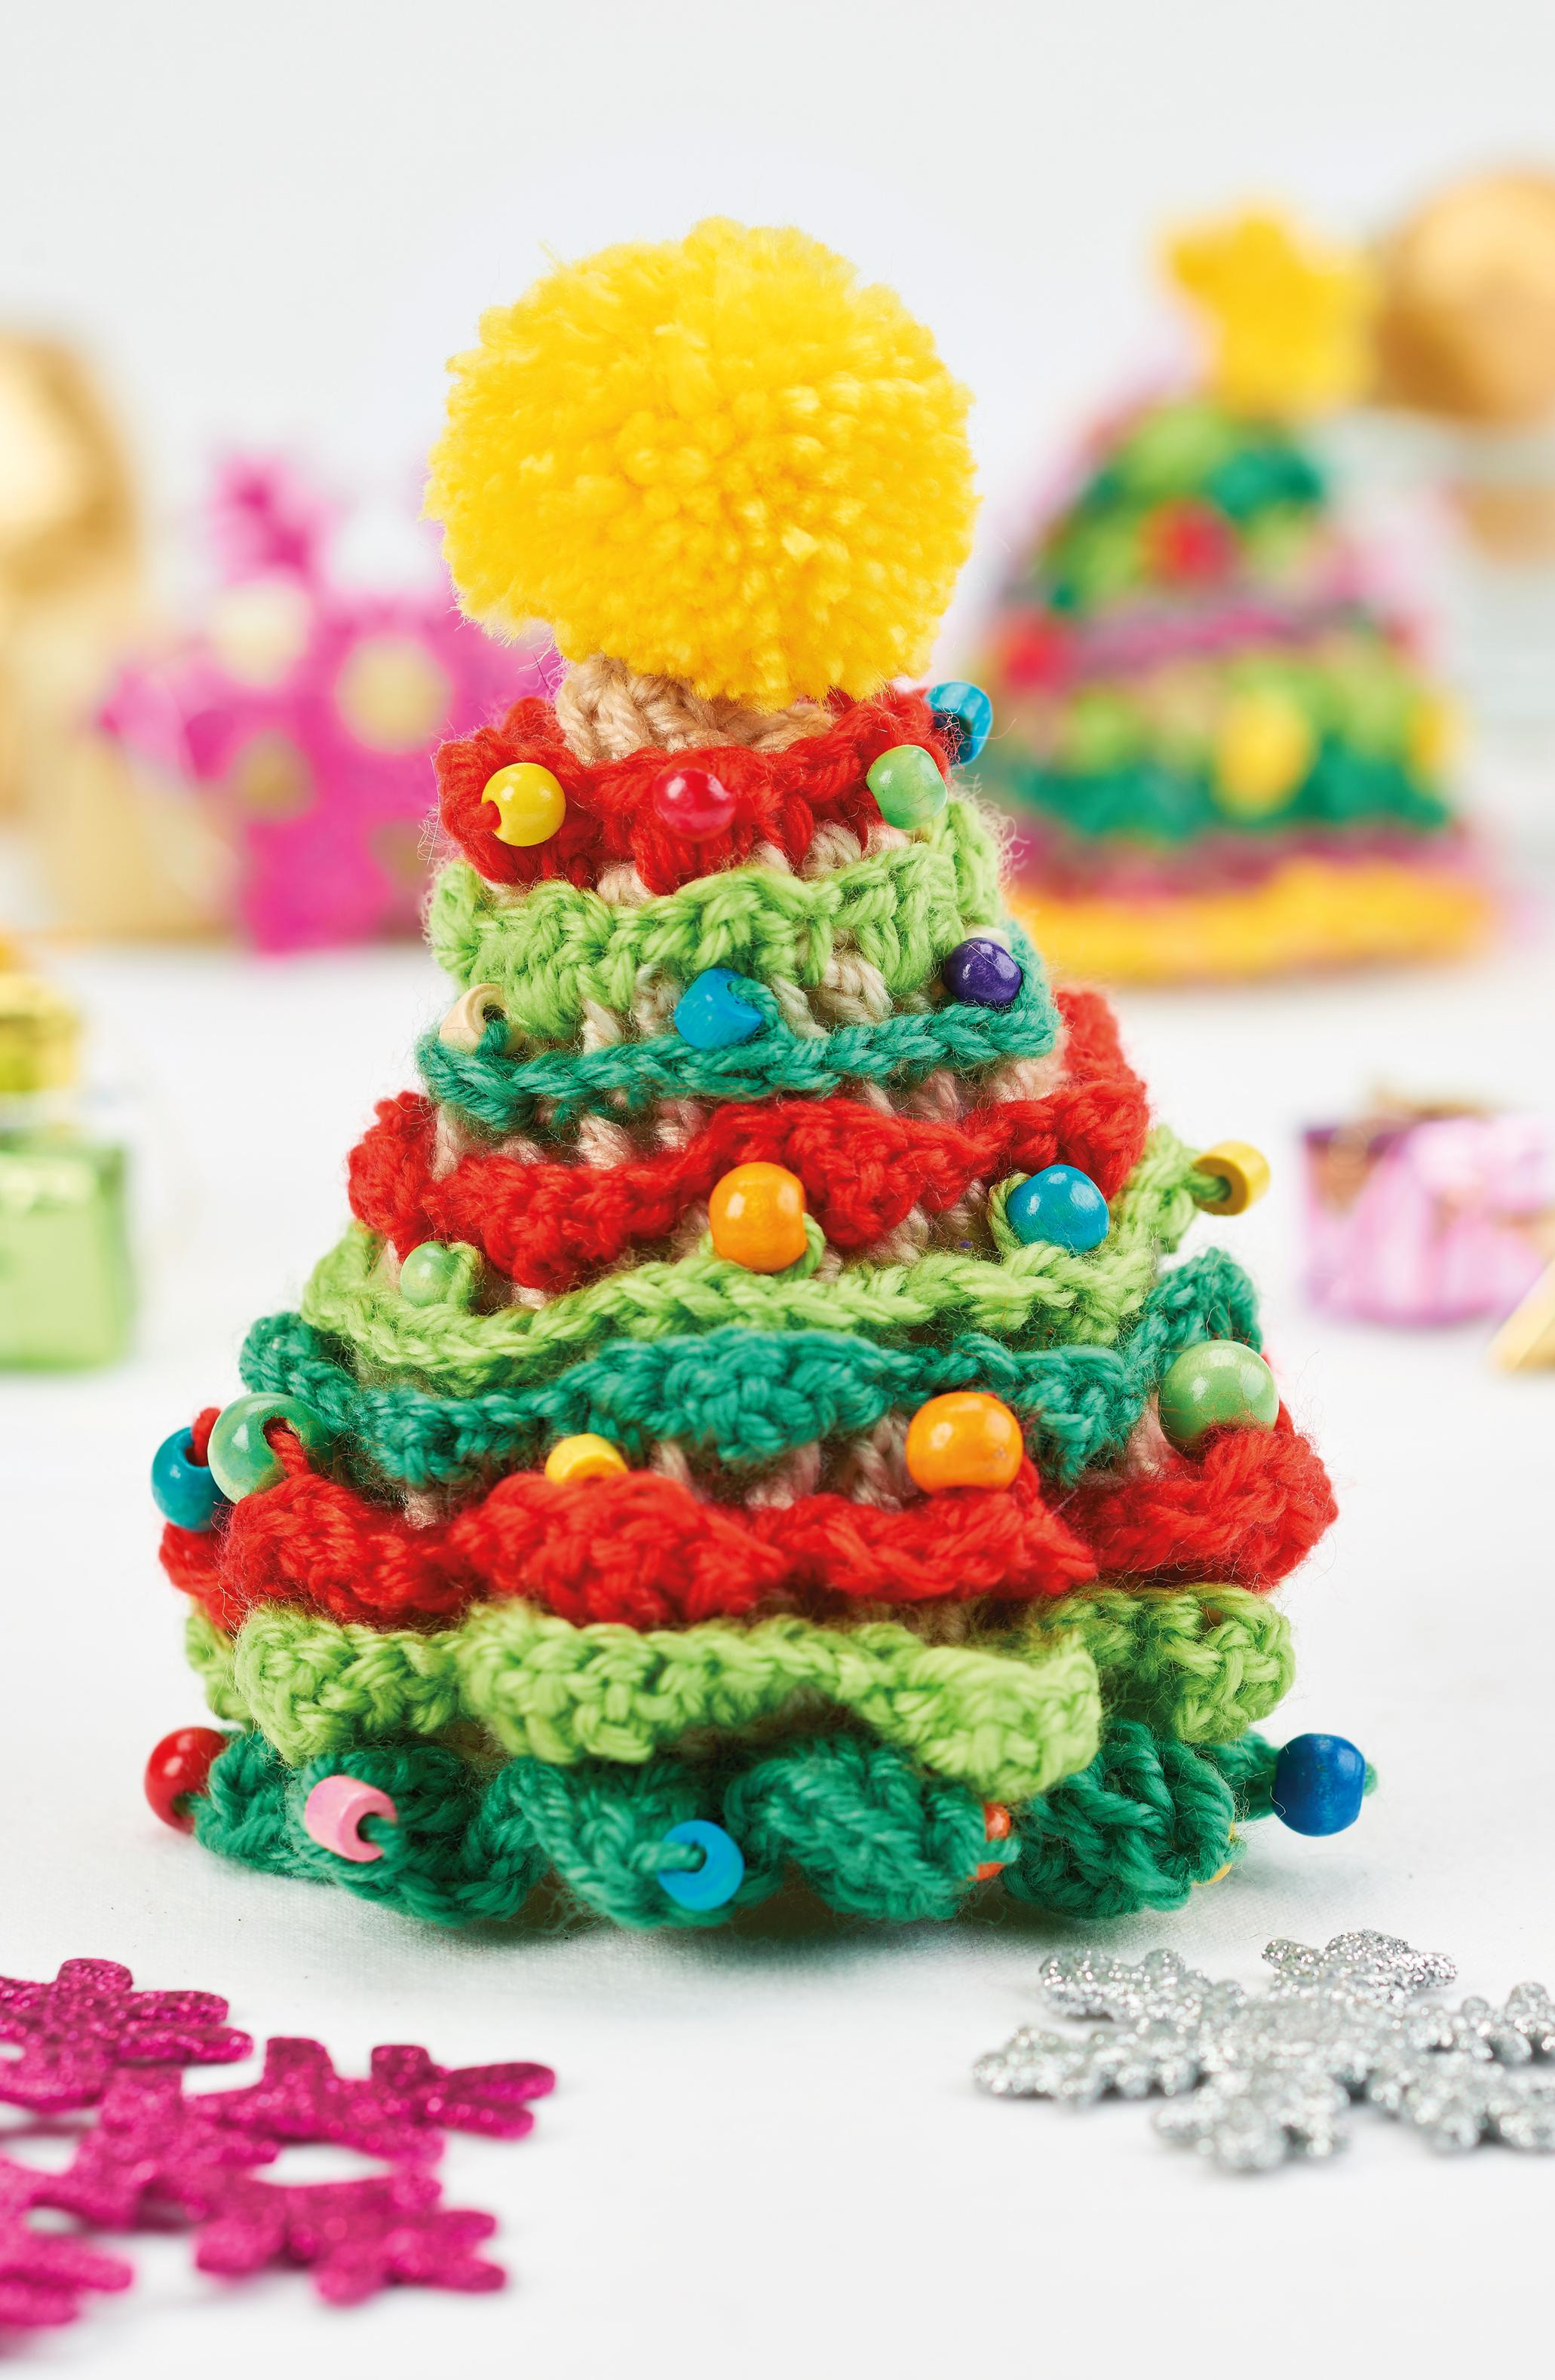 Crochet Patterns Xmas Tree Decorations : Christmas tree decorations Crochet Pattern